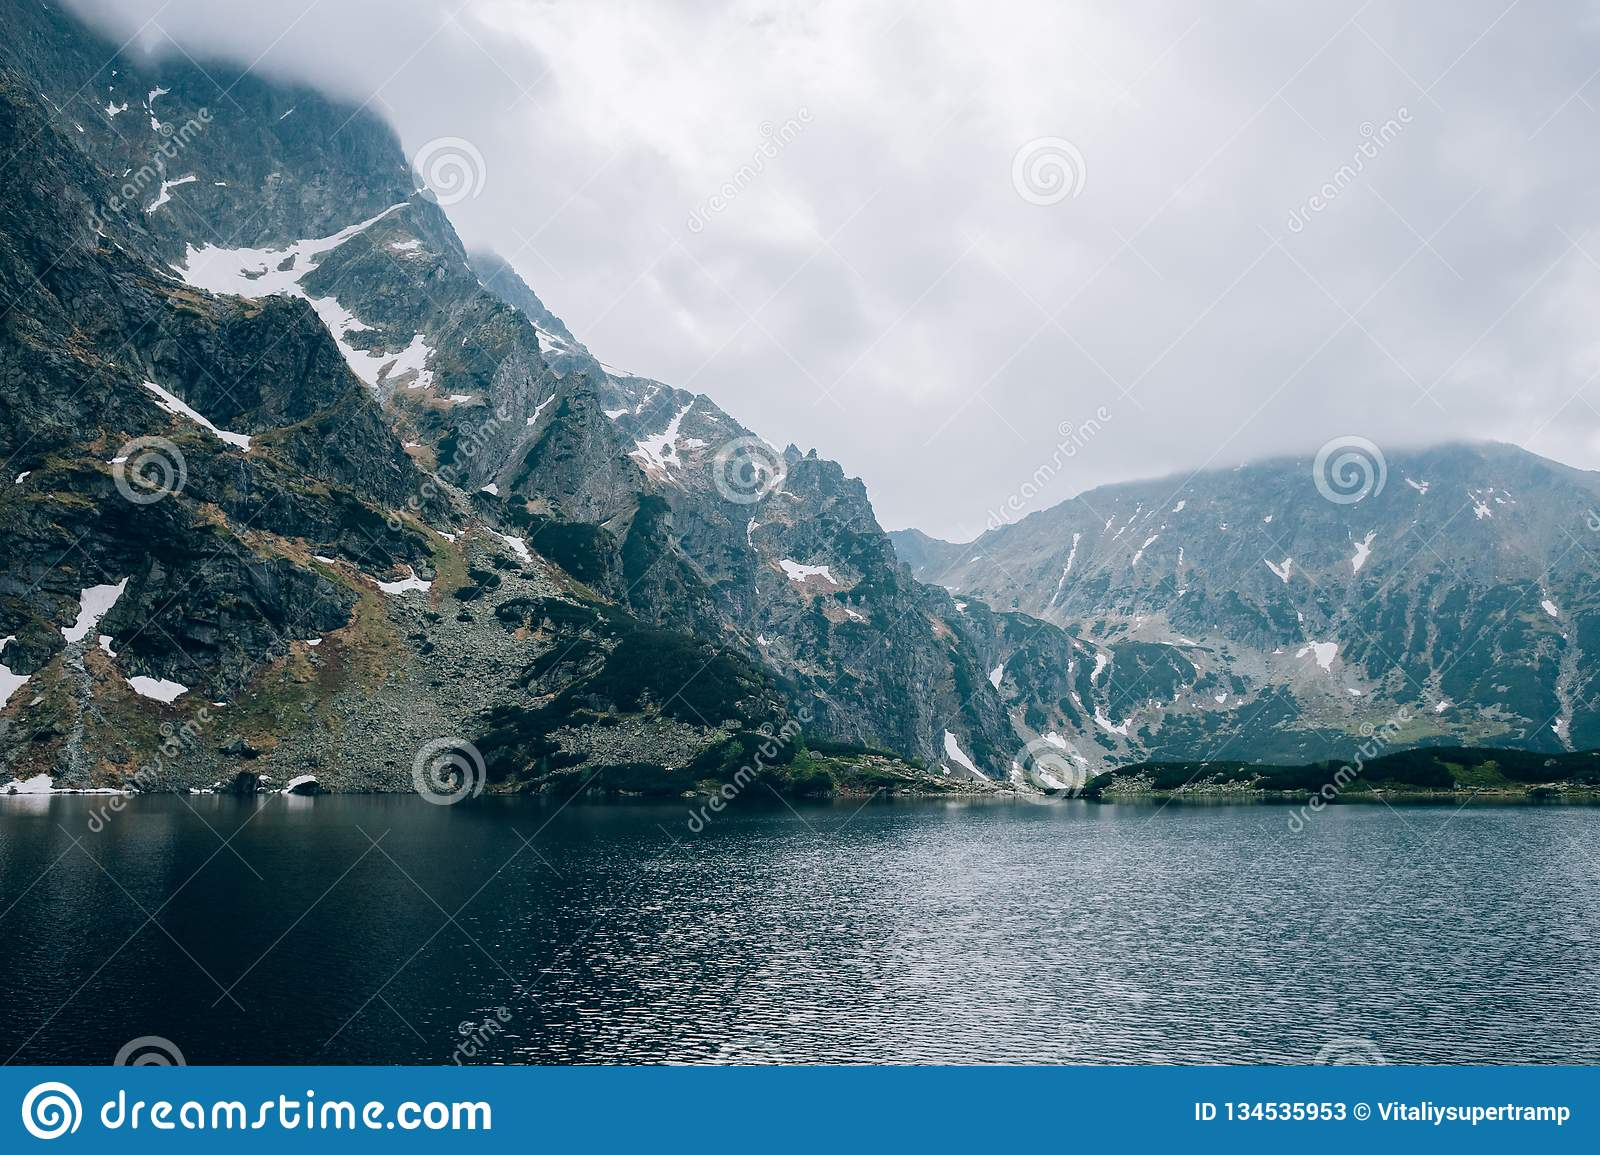 Pond In A Mountain Valley In Cloudy Weather Czarny Sraw ...